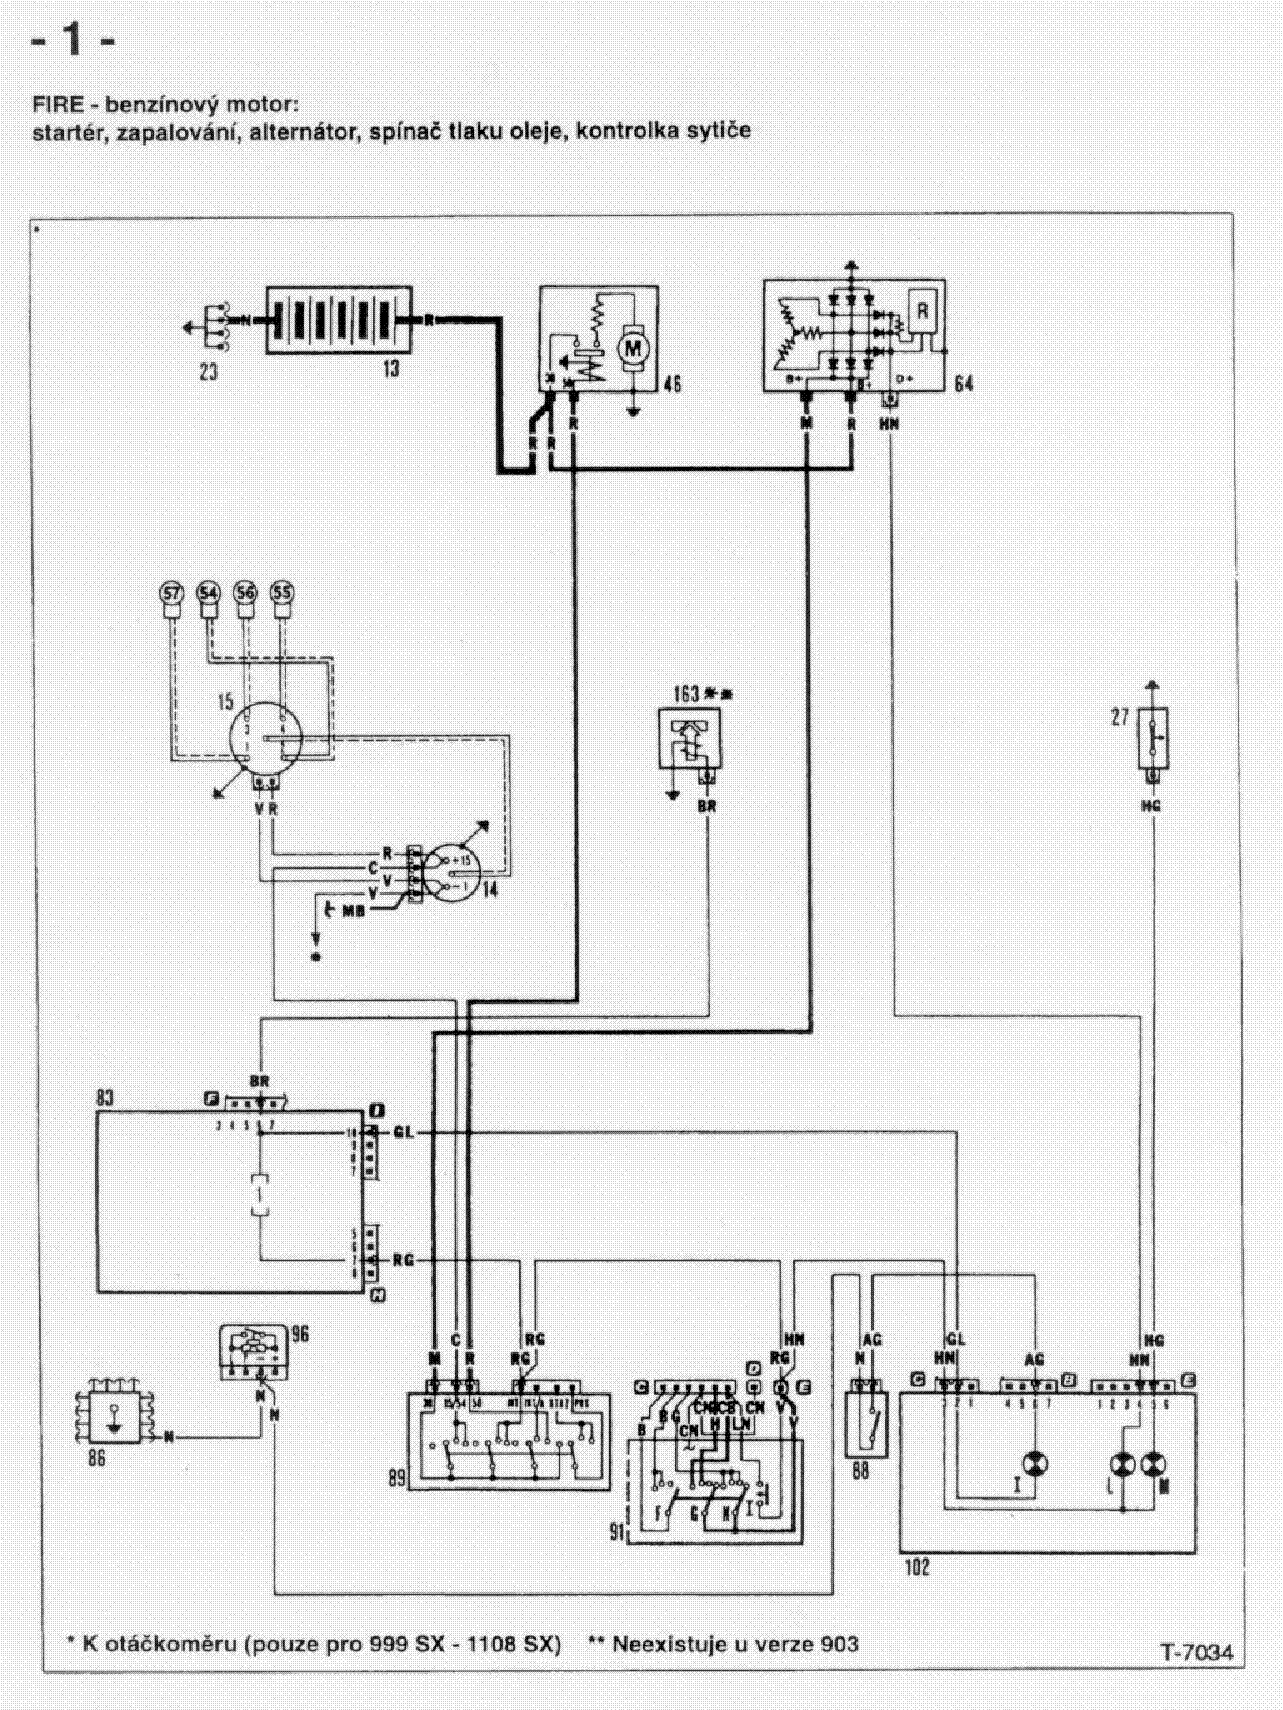 fiat uno fire wiring diagram schematics wiring diagrams u2022 rh seniorlivinguniversity co 12 Fiat 500 Wiring Diagram Fiat Spider Wiring-Diagram